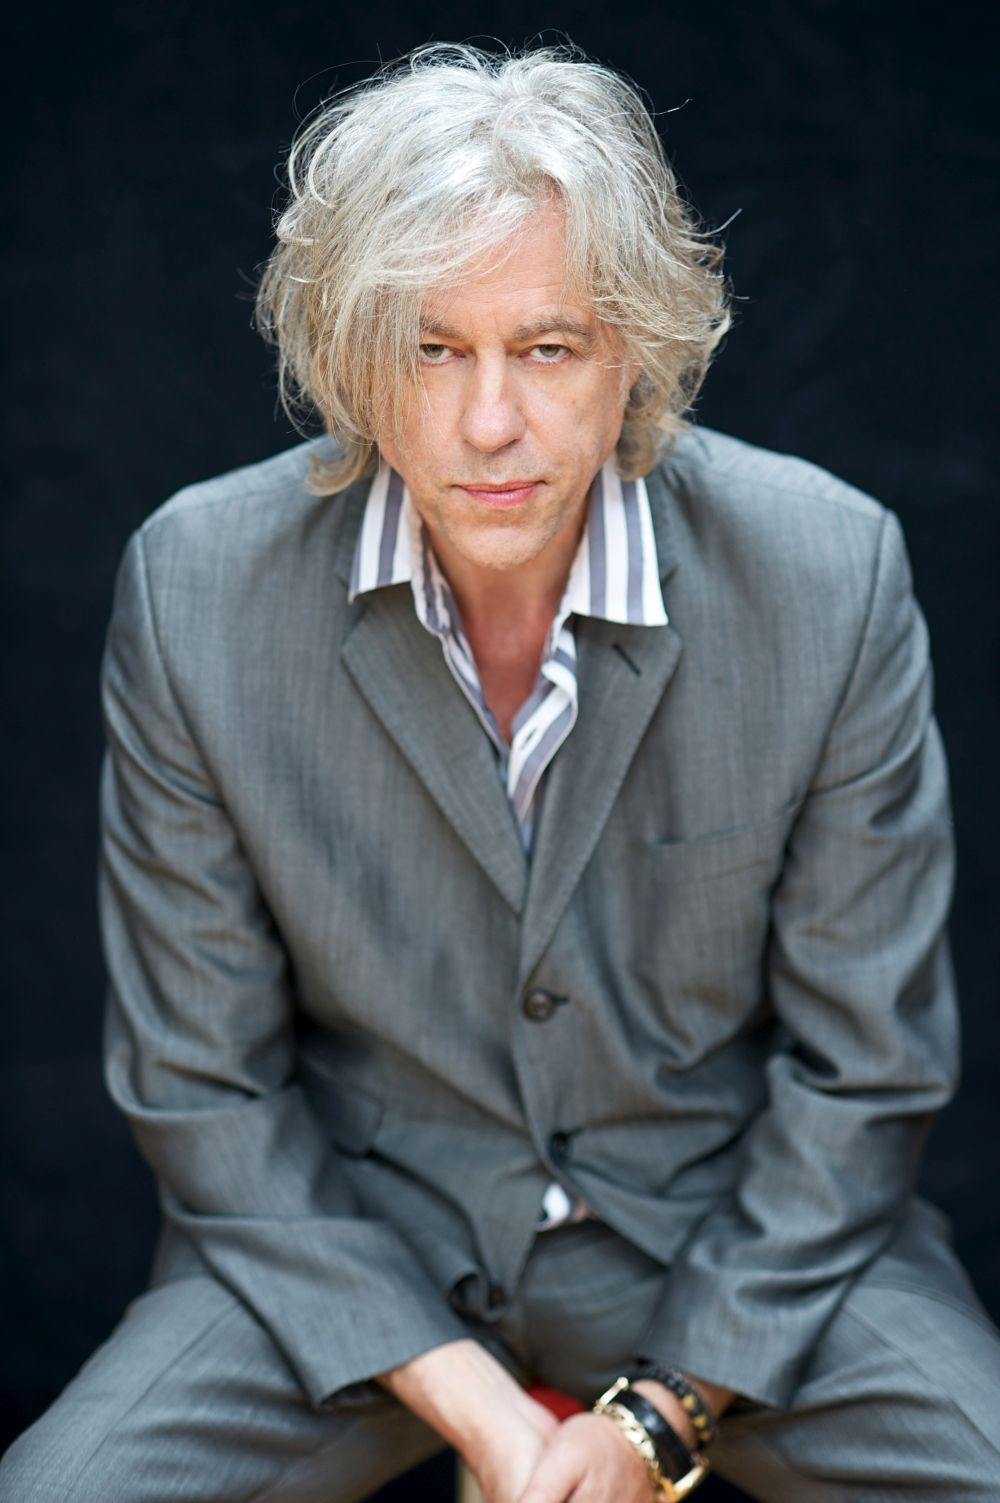 Bob_Geldof_Soundedit_press_small